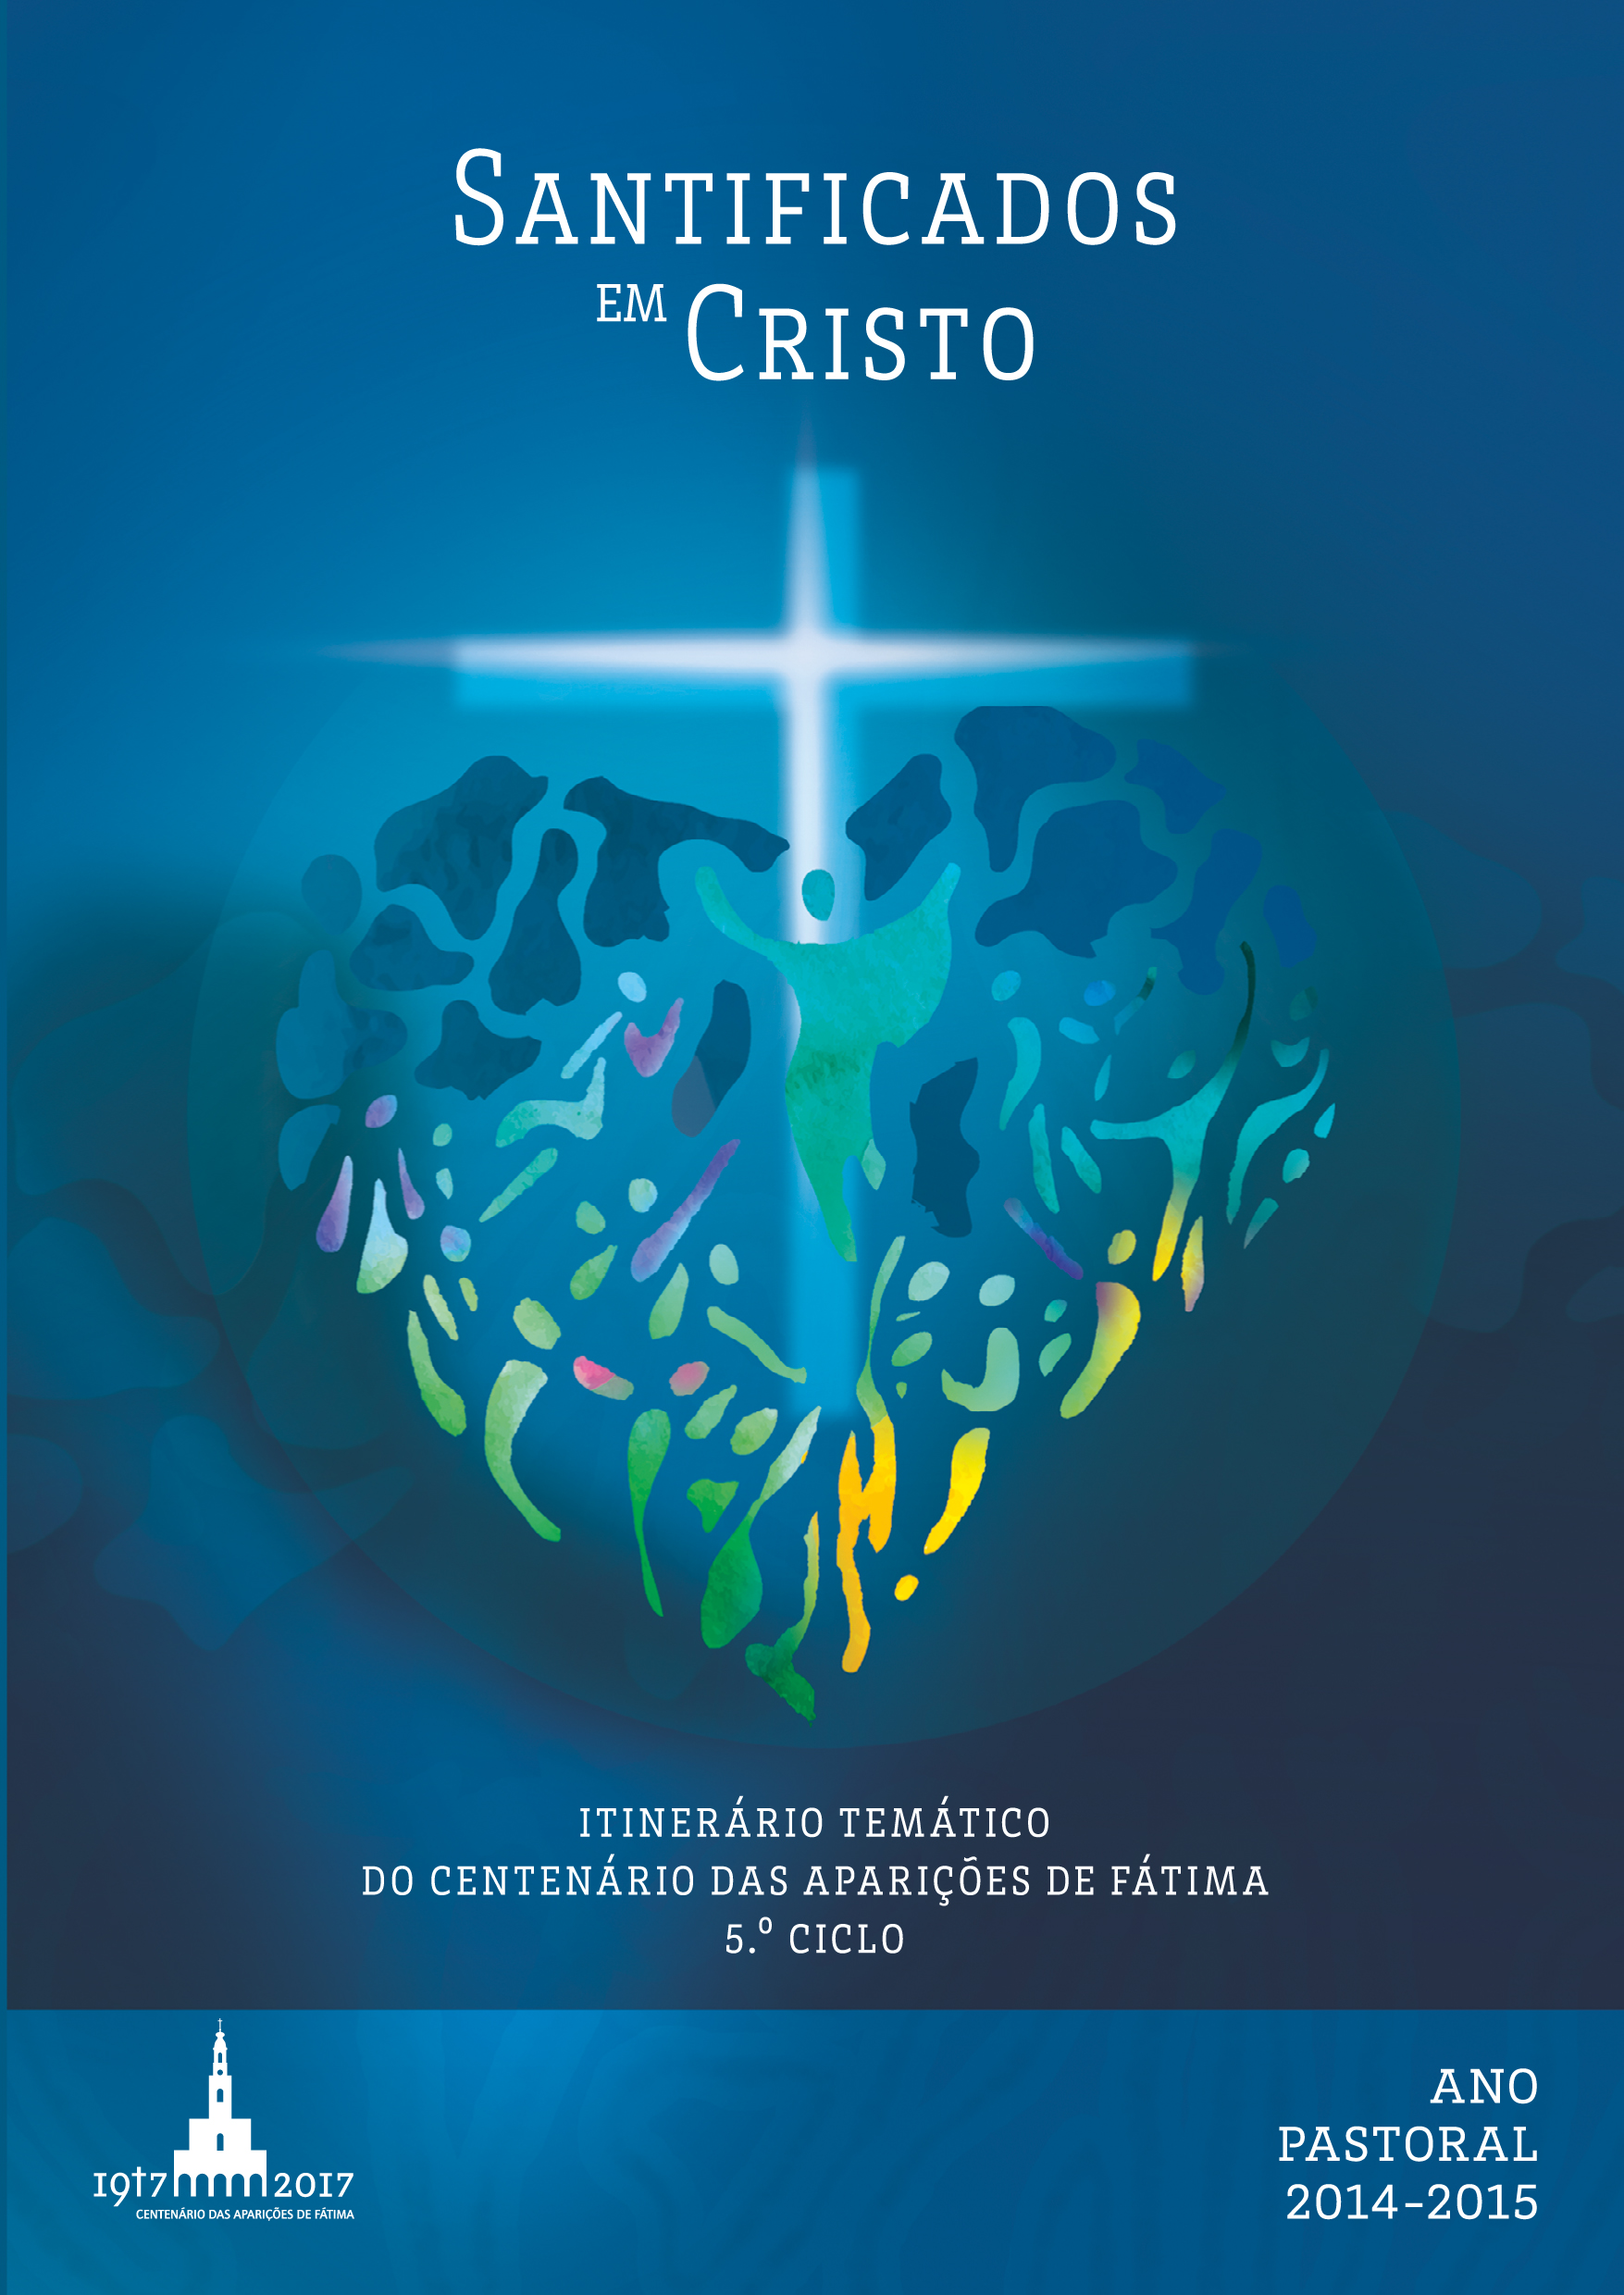 Cartaz do Ano Pastoral 2014-2015